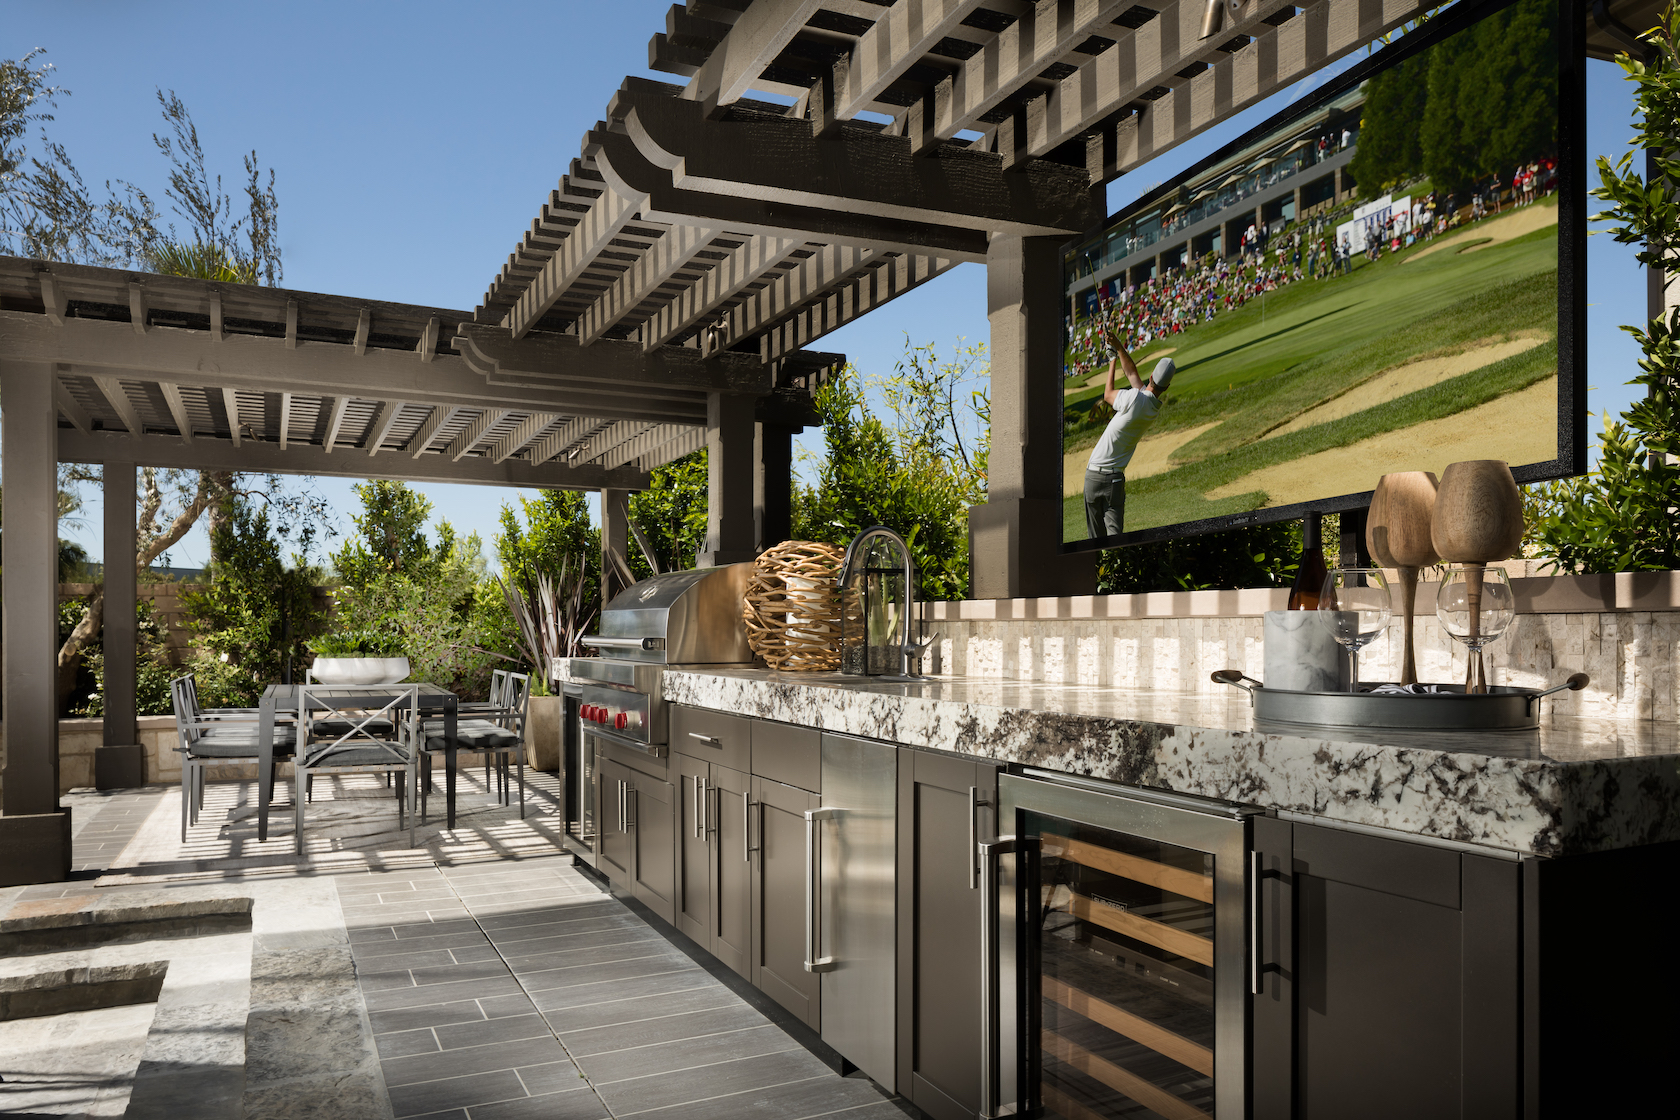 terrific gallery various ideas designing outdoor kitchen | Dream Designs & Ideas For Your Outdoor Kitchen | Build ...